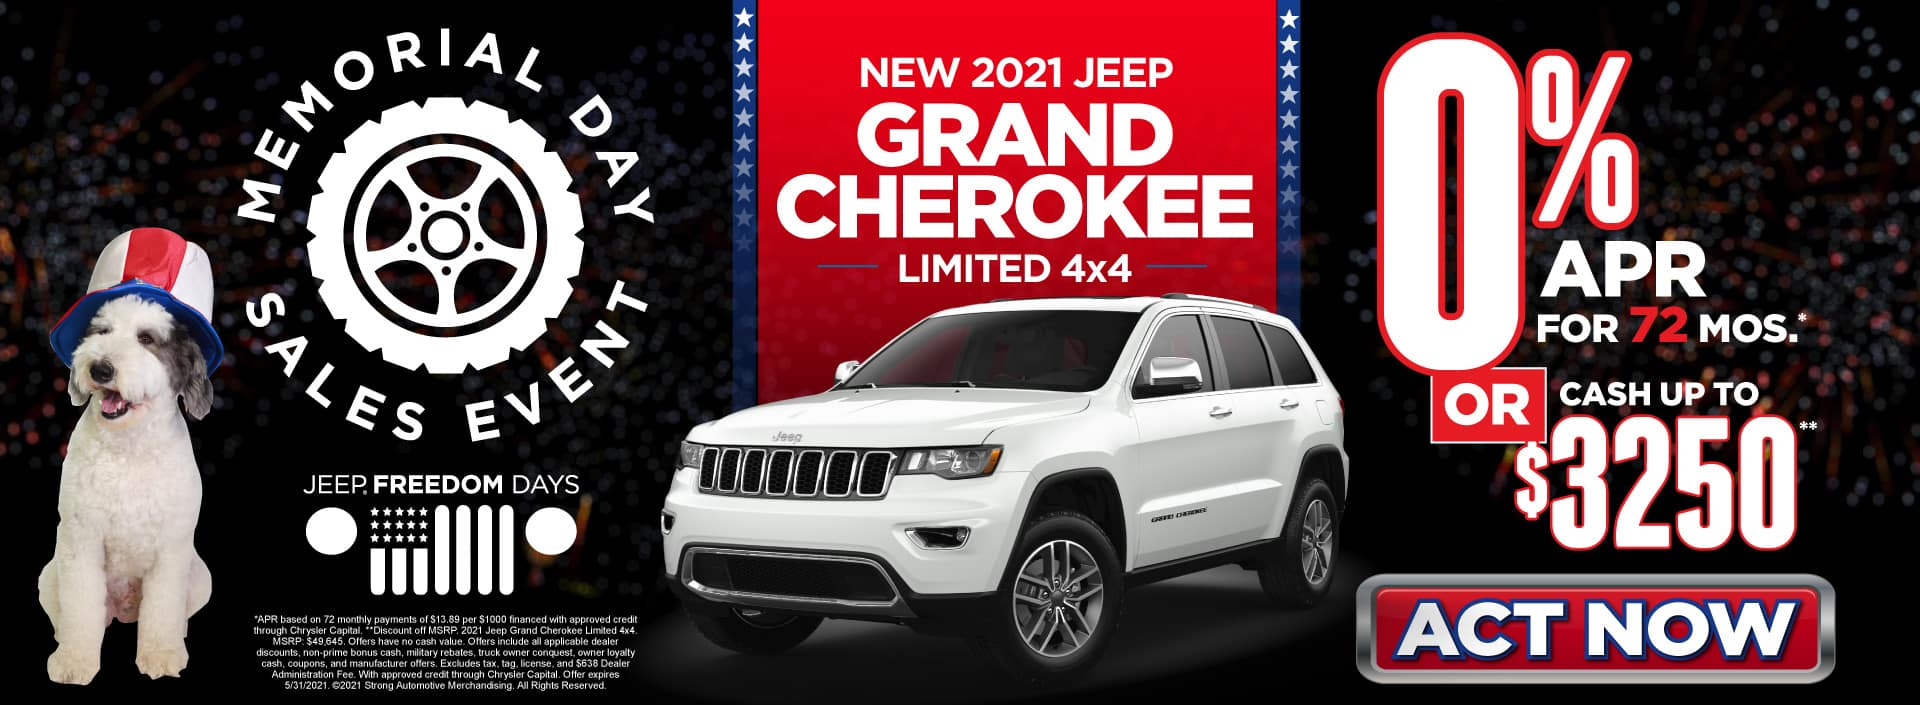 New 2021 Jeep Grand Cherokee - 0% APR for 72 months - Act Now